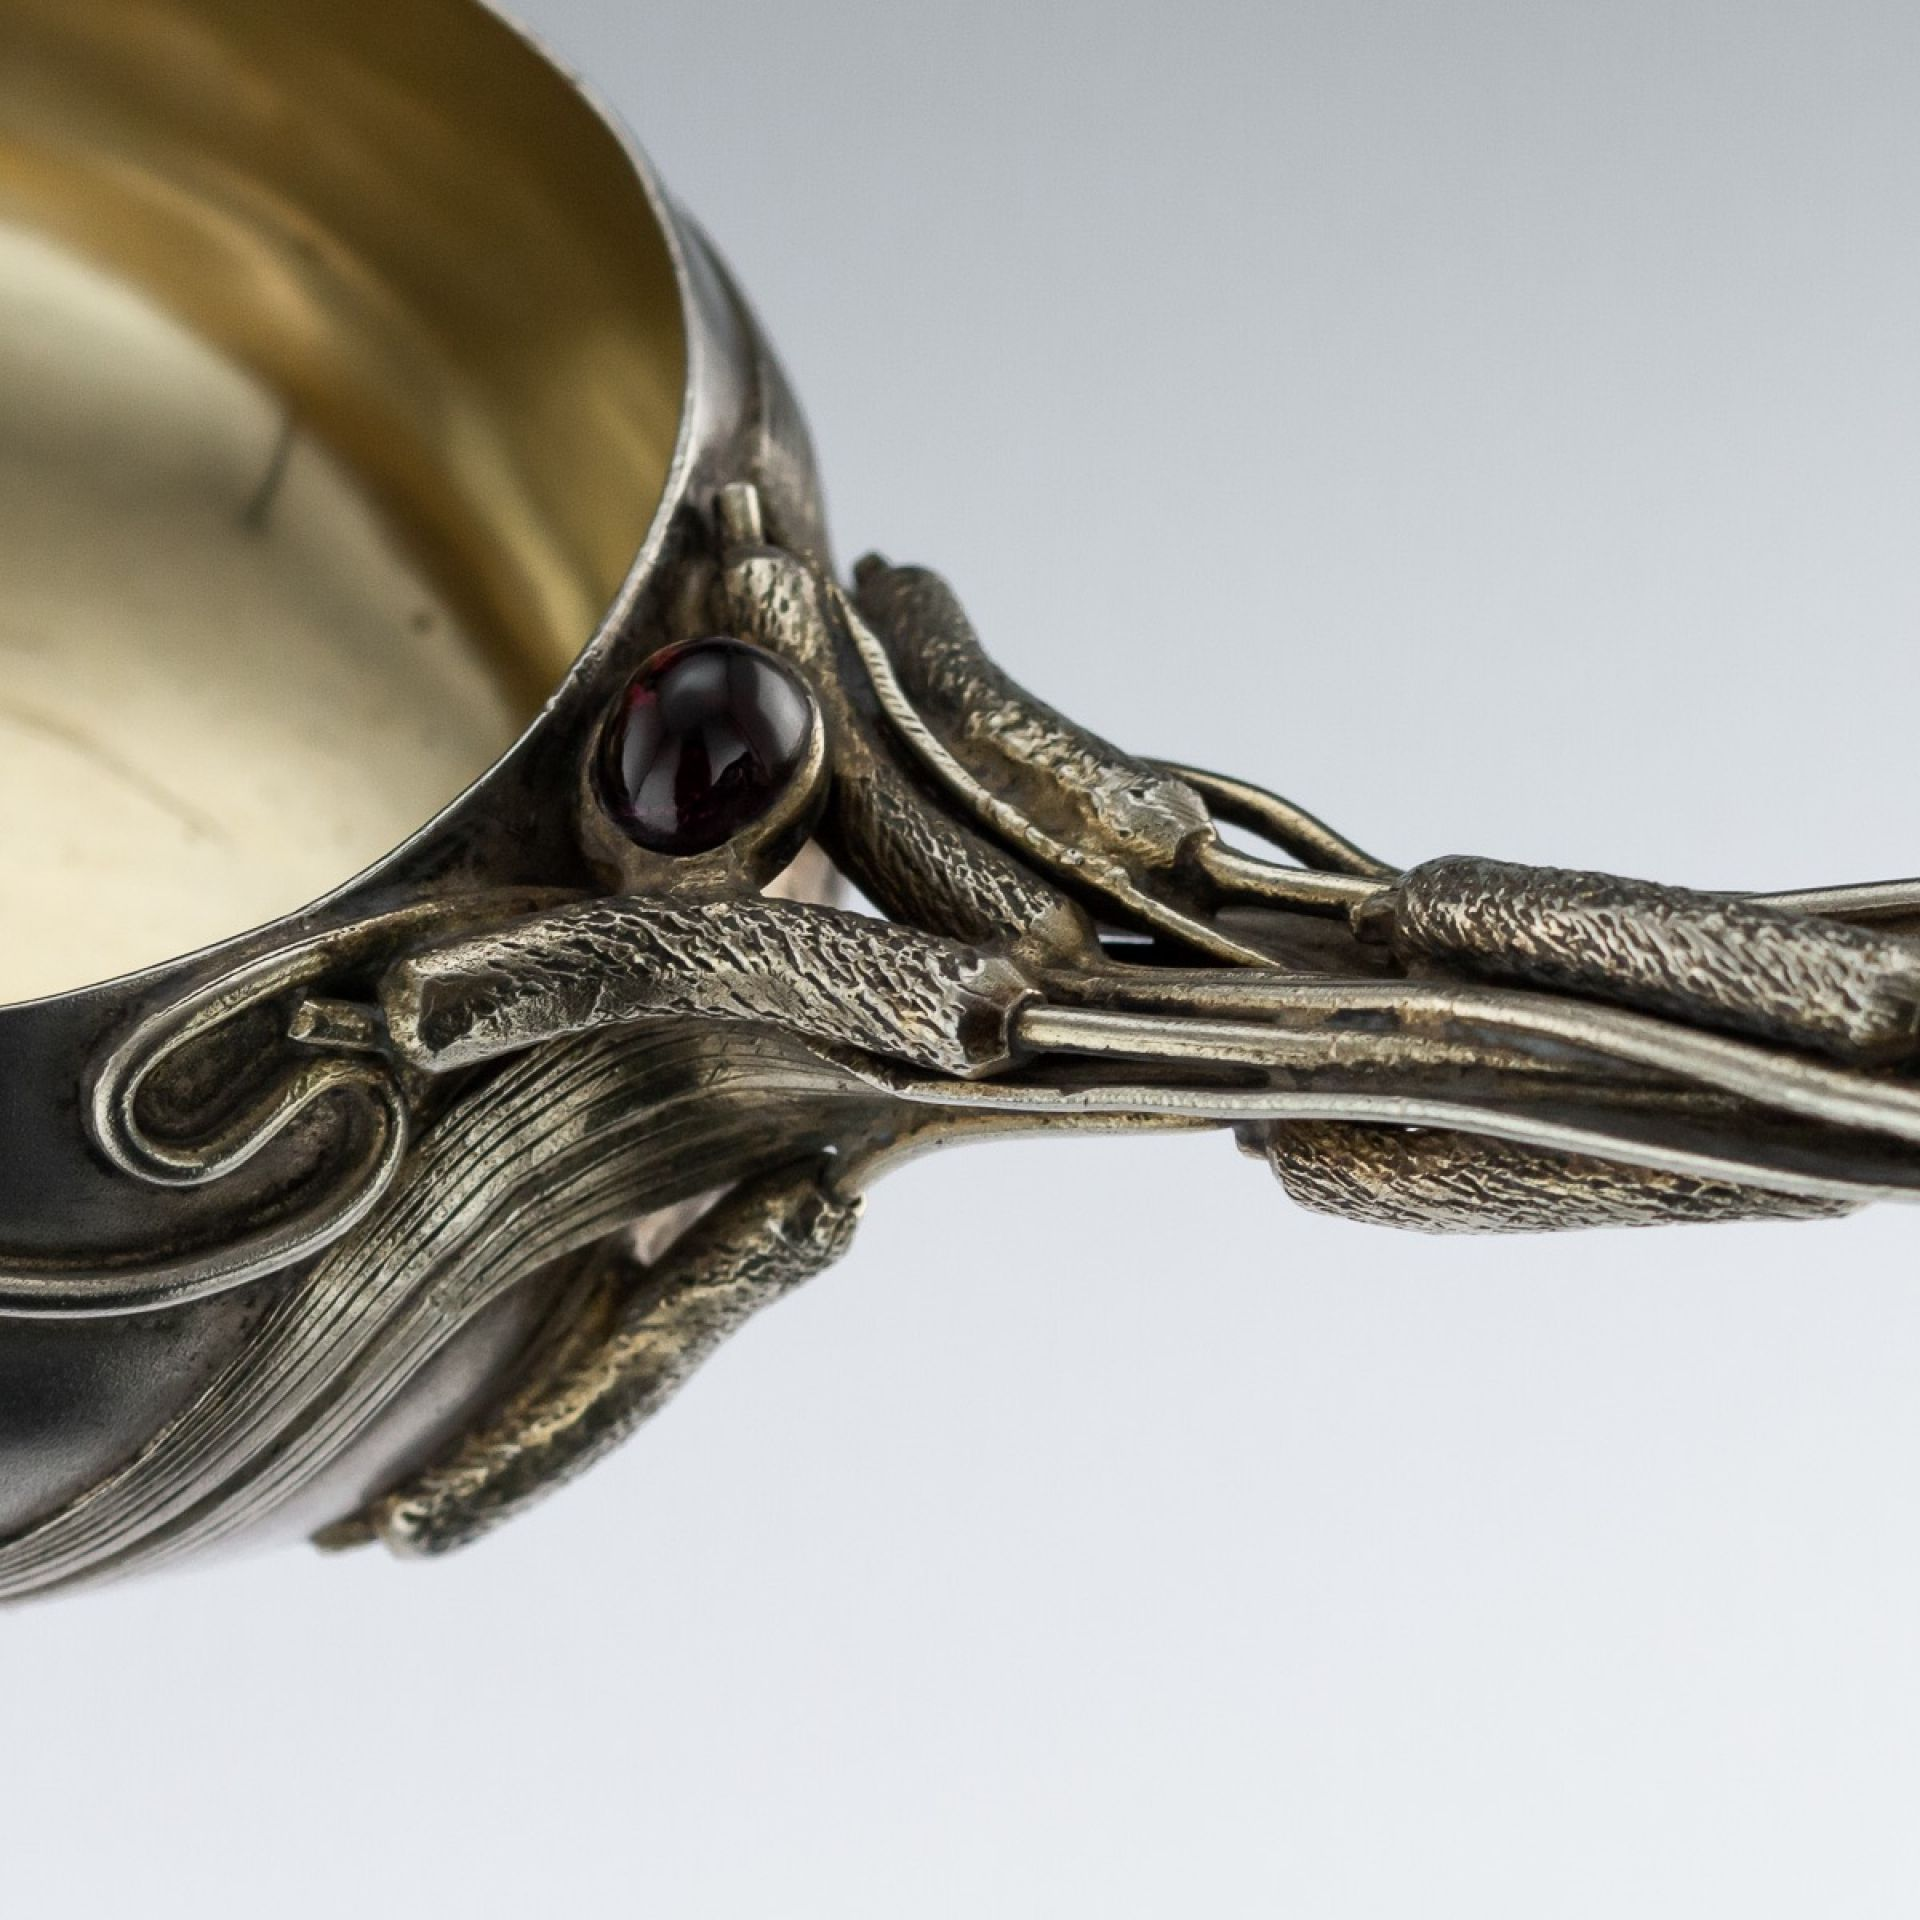 ANTIQUE 20thC RUSSIAN GEM-SET SOLID SILVER PUNCH LADLE, TARASOV, MOSCOW c.1900